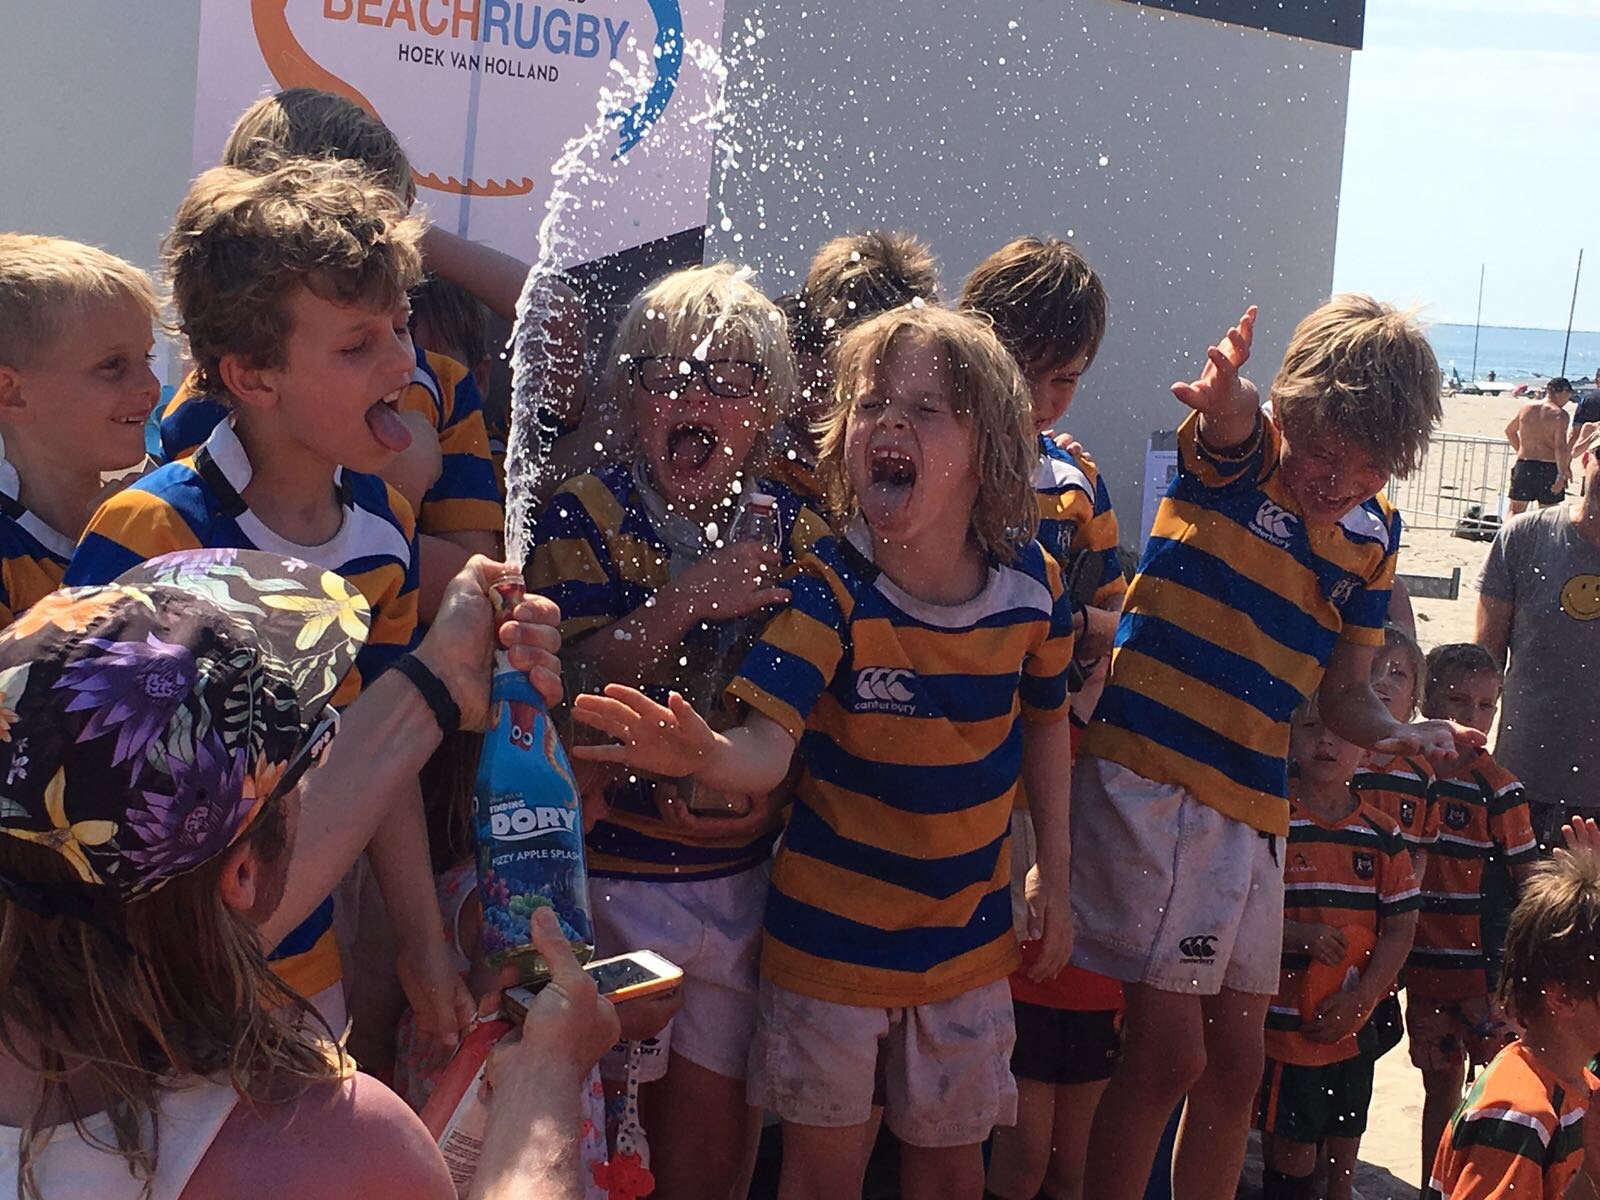 turven HRC winnen beachrugby Hookers